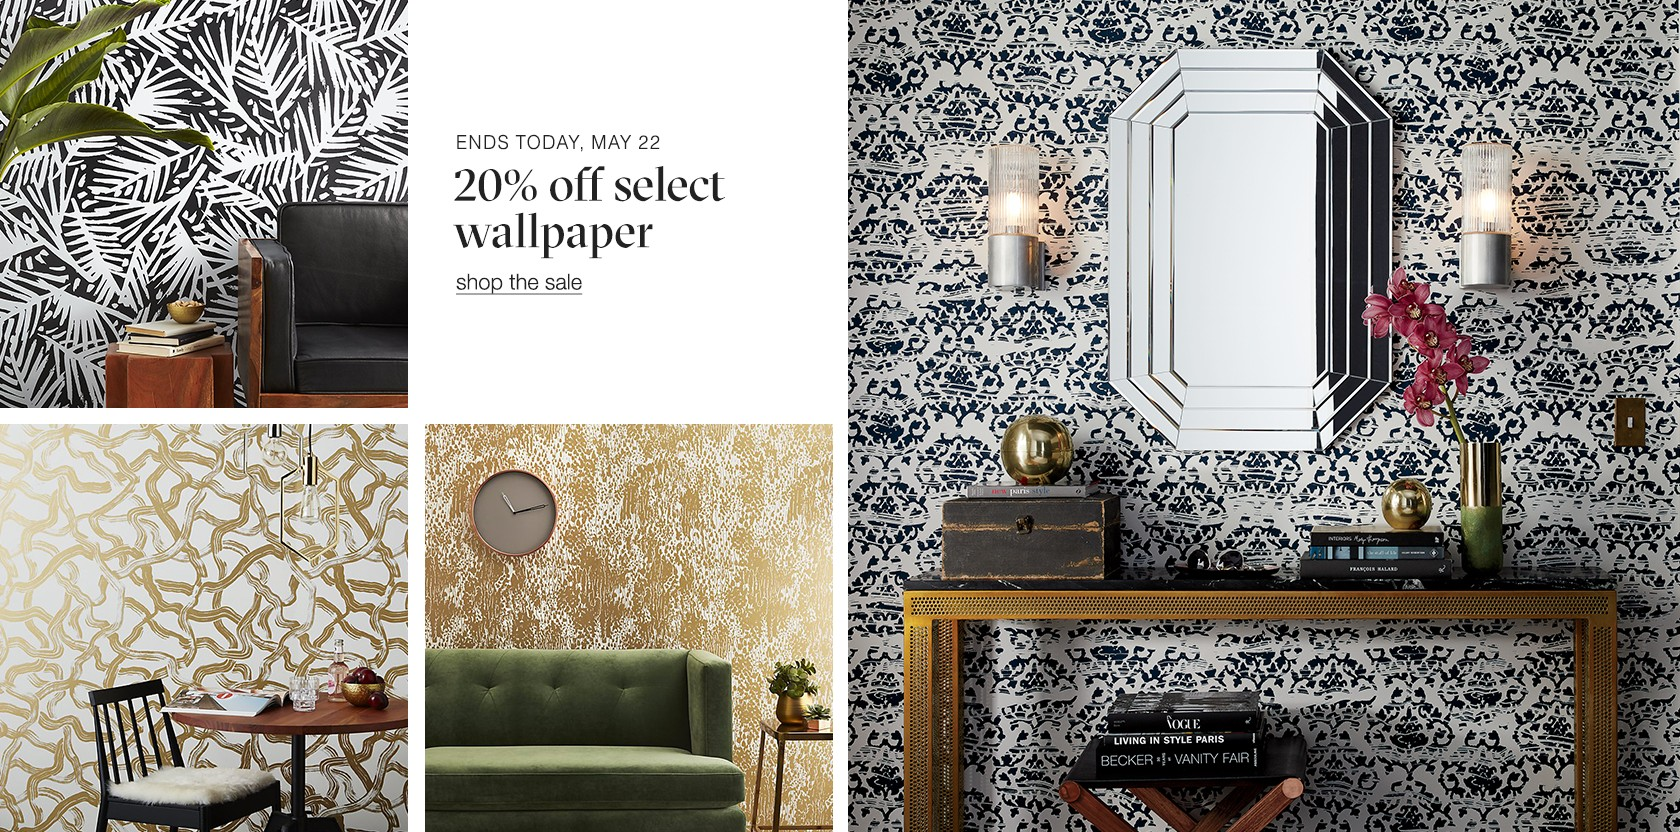 20% off select wallpaper